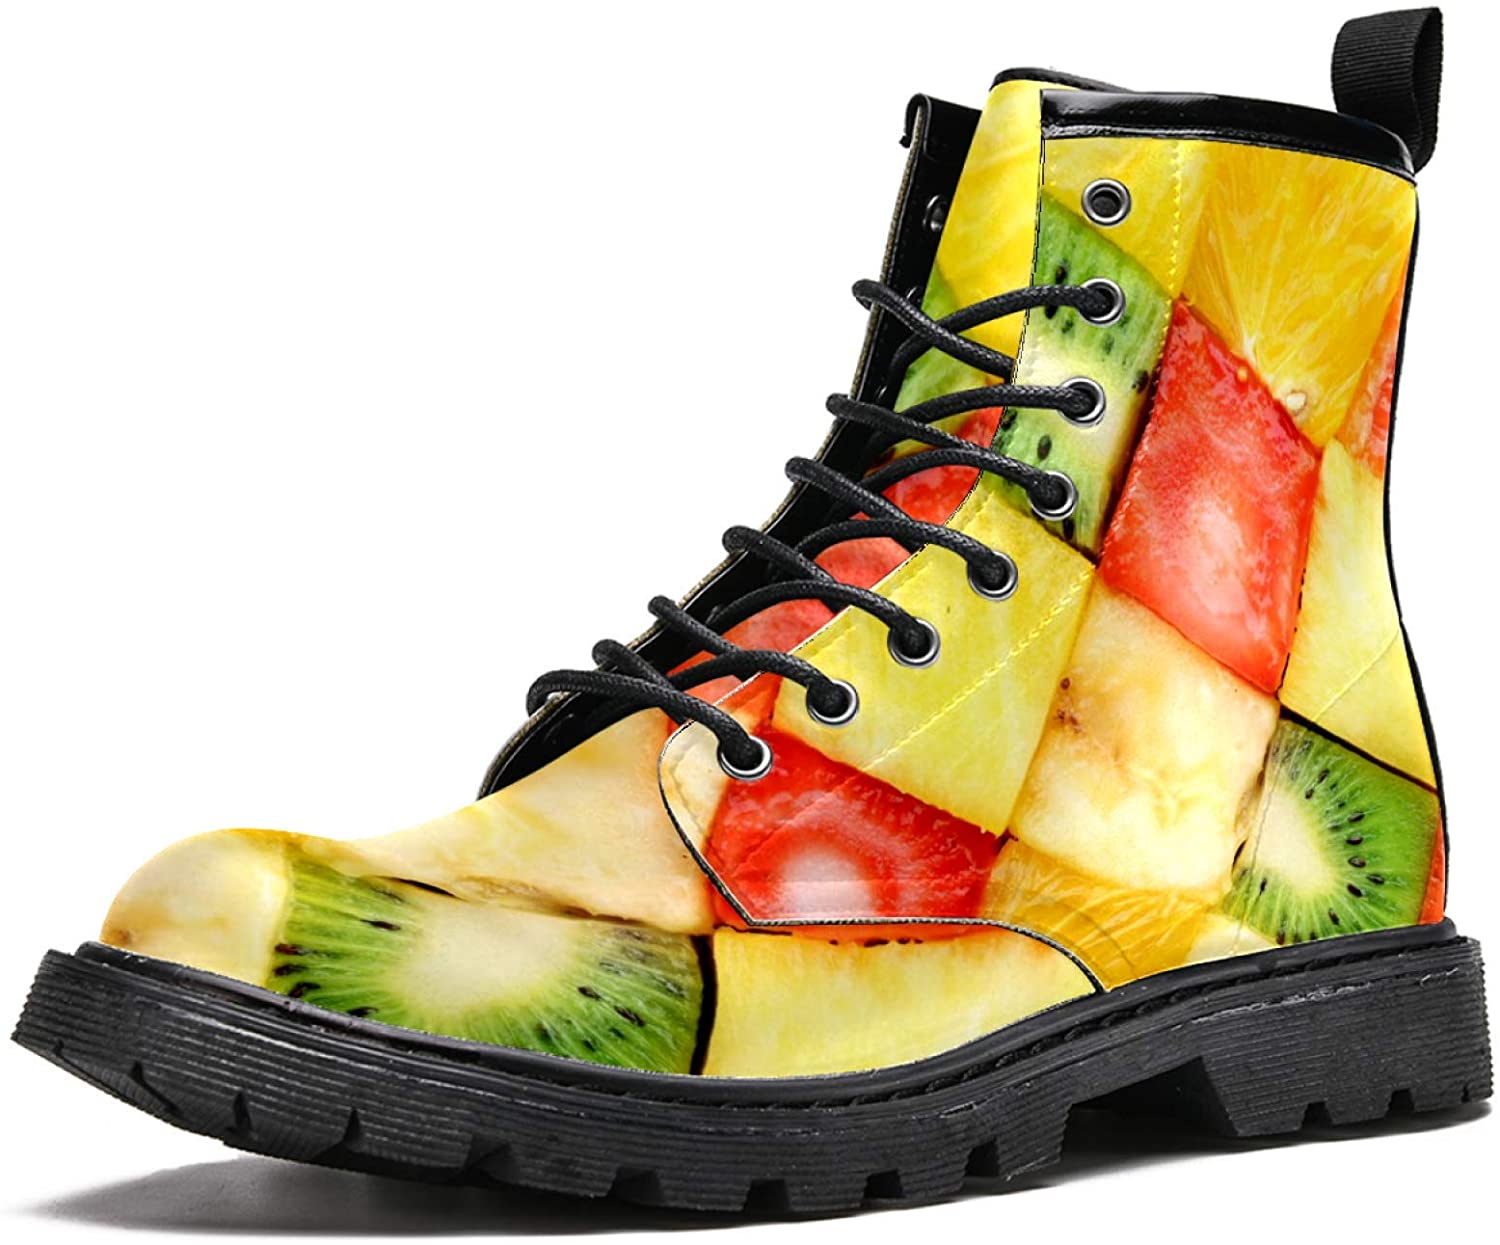 LORVIES Colorful Sliced Fruits Men's High Top Boots Lace Up Casual Leather Ankle Shoes